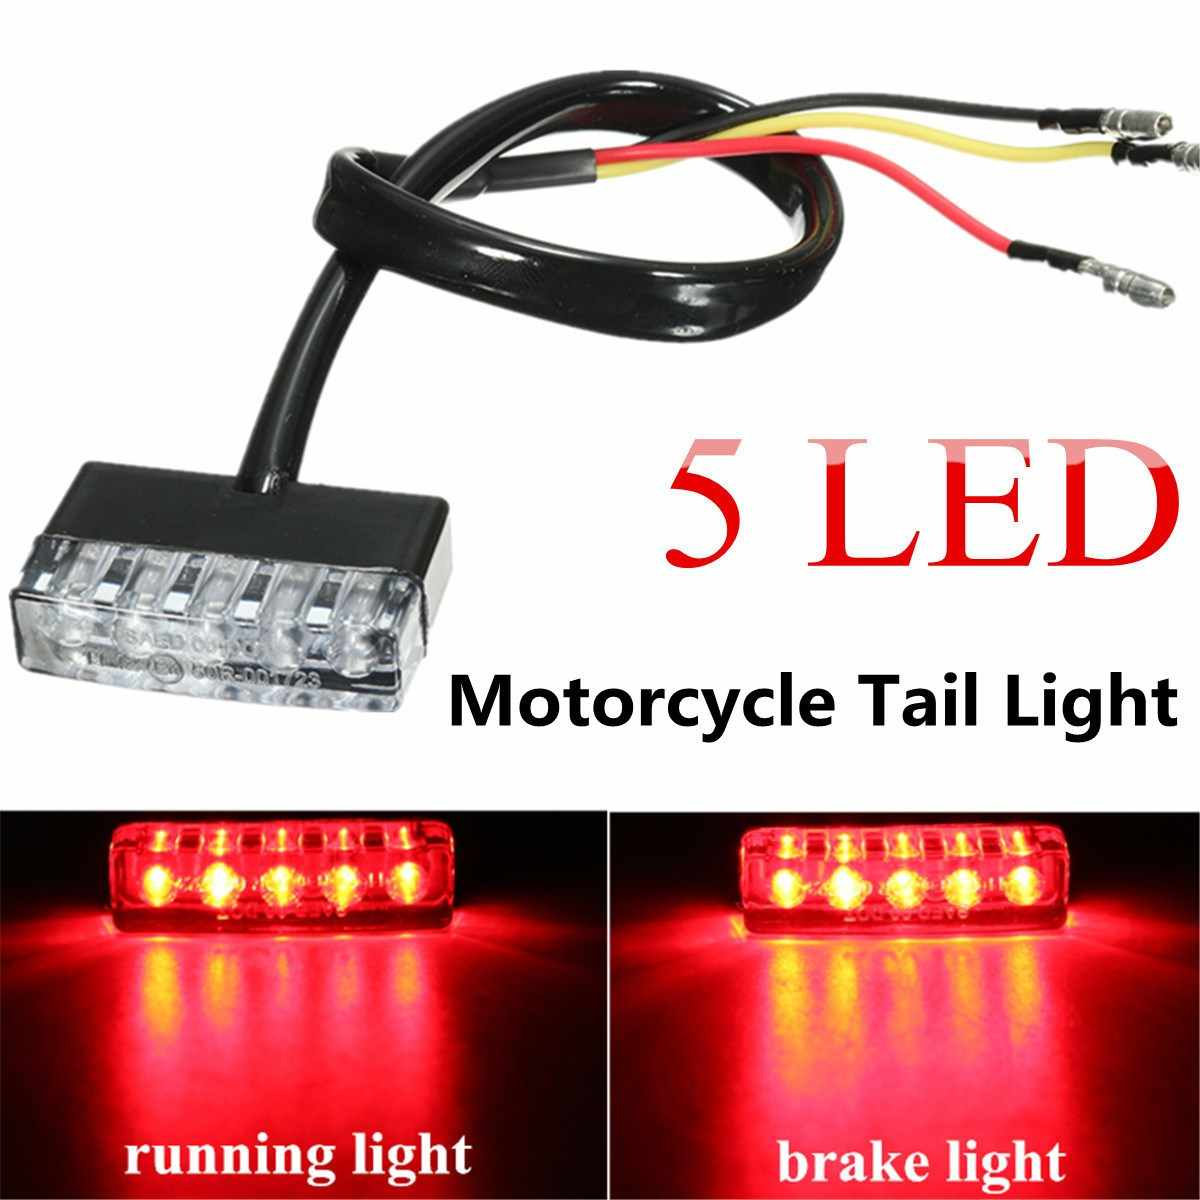 medium resolution of 12v universal motorcycle atv bike mini 5 led rear lamp taillight running stop signal brake lights